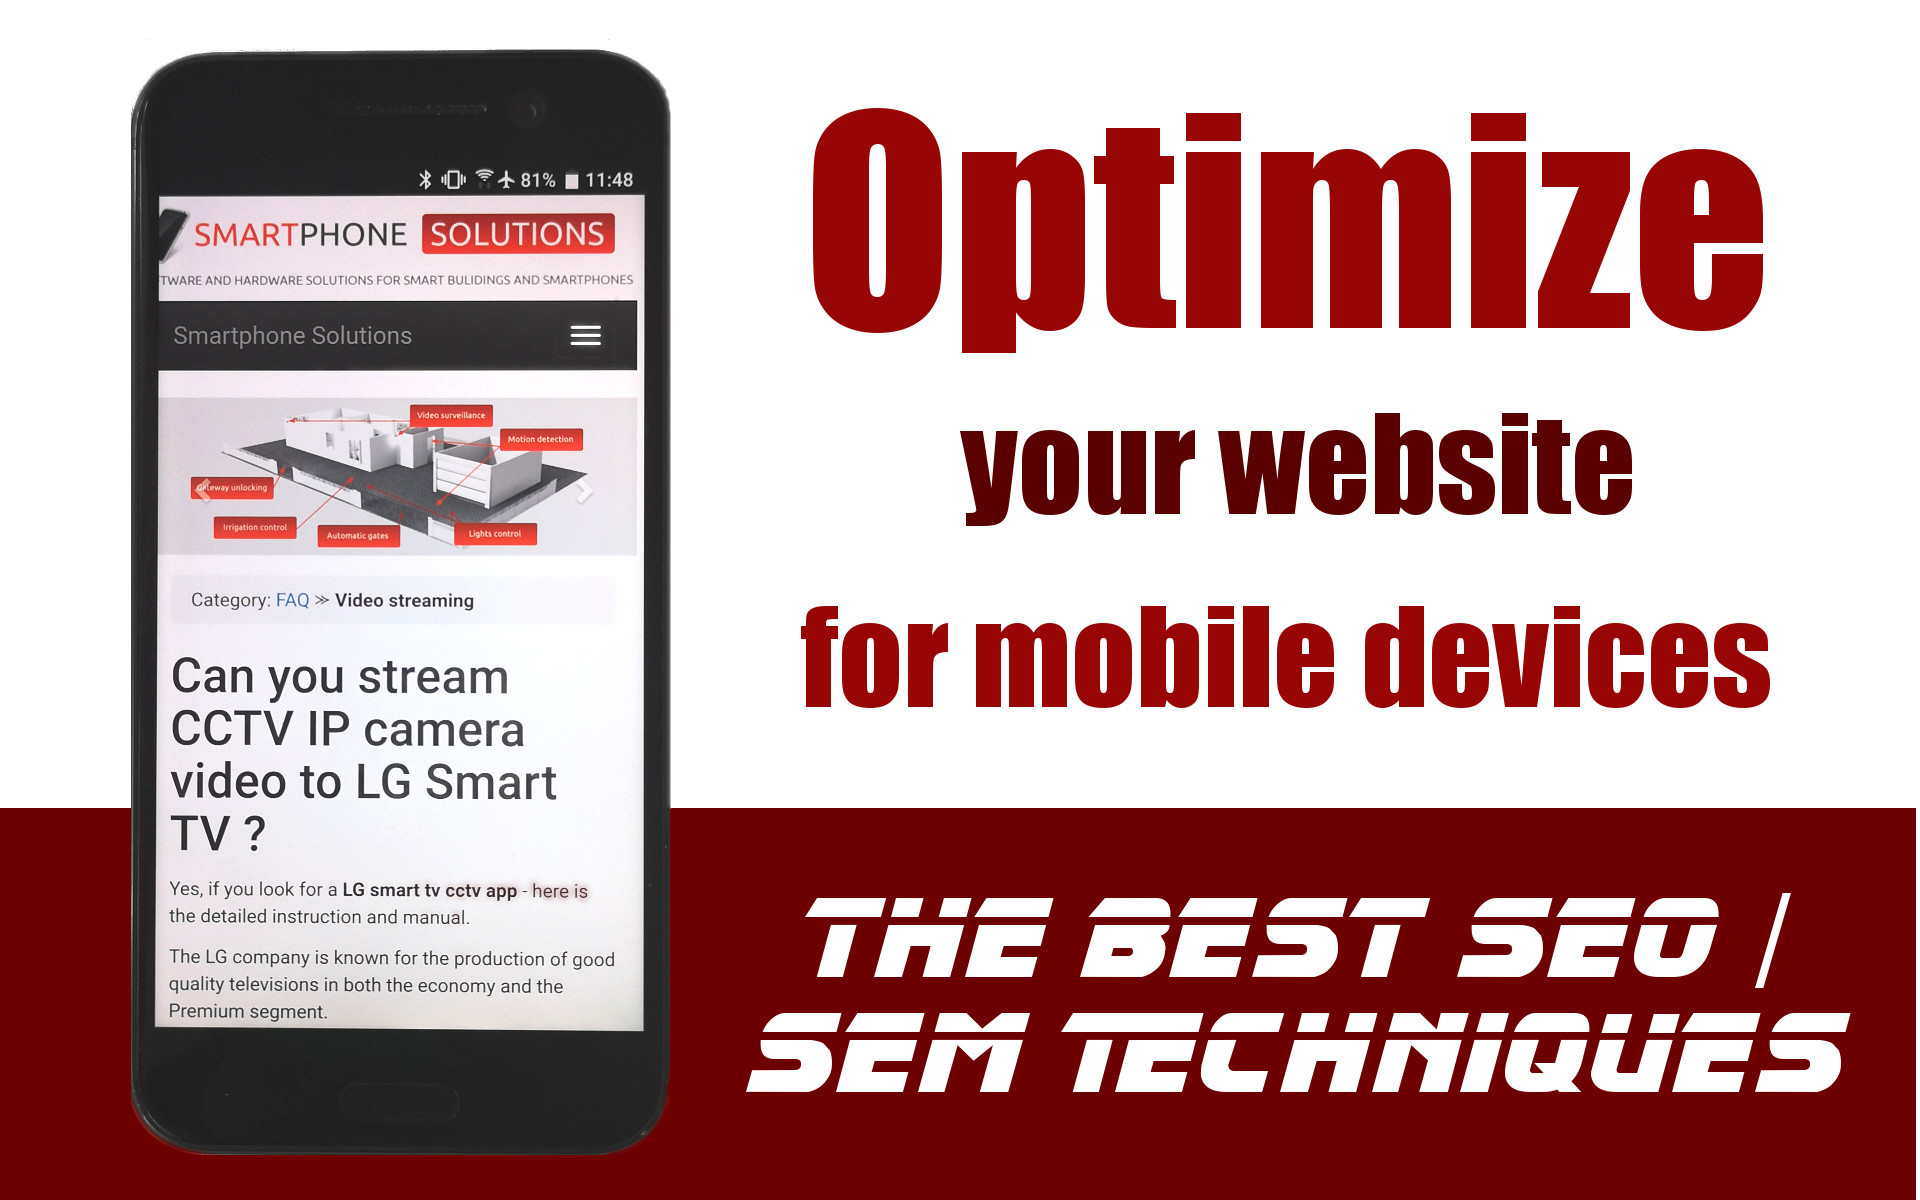 How to make mobile friendly version of the website